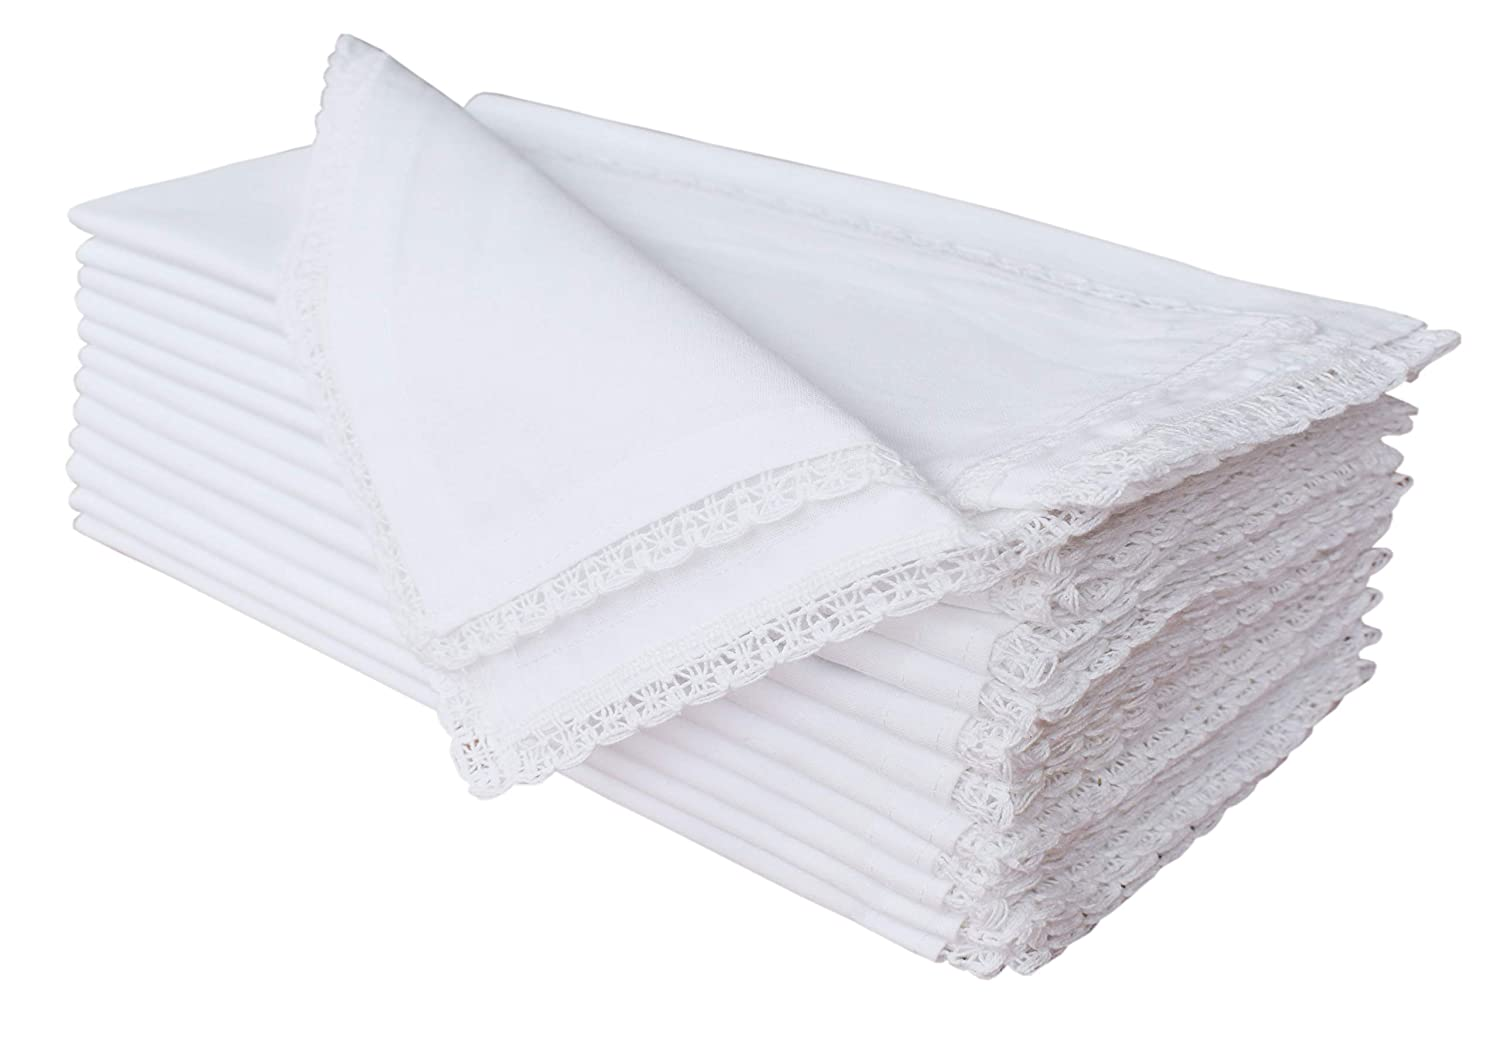 Cloth Napkin In Solid Cotton Fabric- White,Oversized 20x20 Lace, Wedding Napkins,Cocktails Napkins,Tailored With Mitered Corners & Generous Hem, Machine Washable Dinner Napkins Set of 12 Cotton Clinics